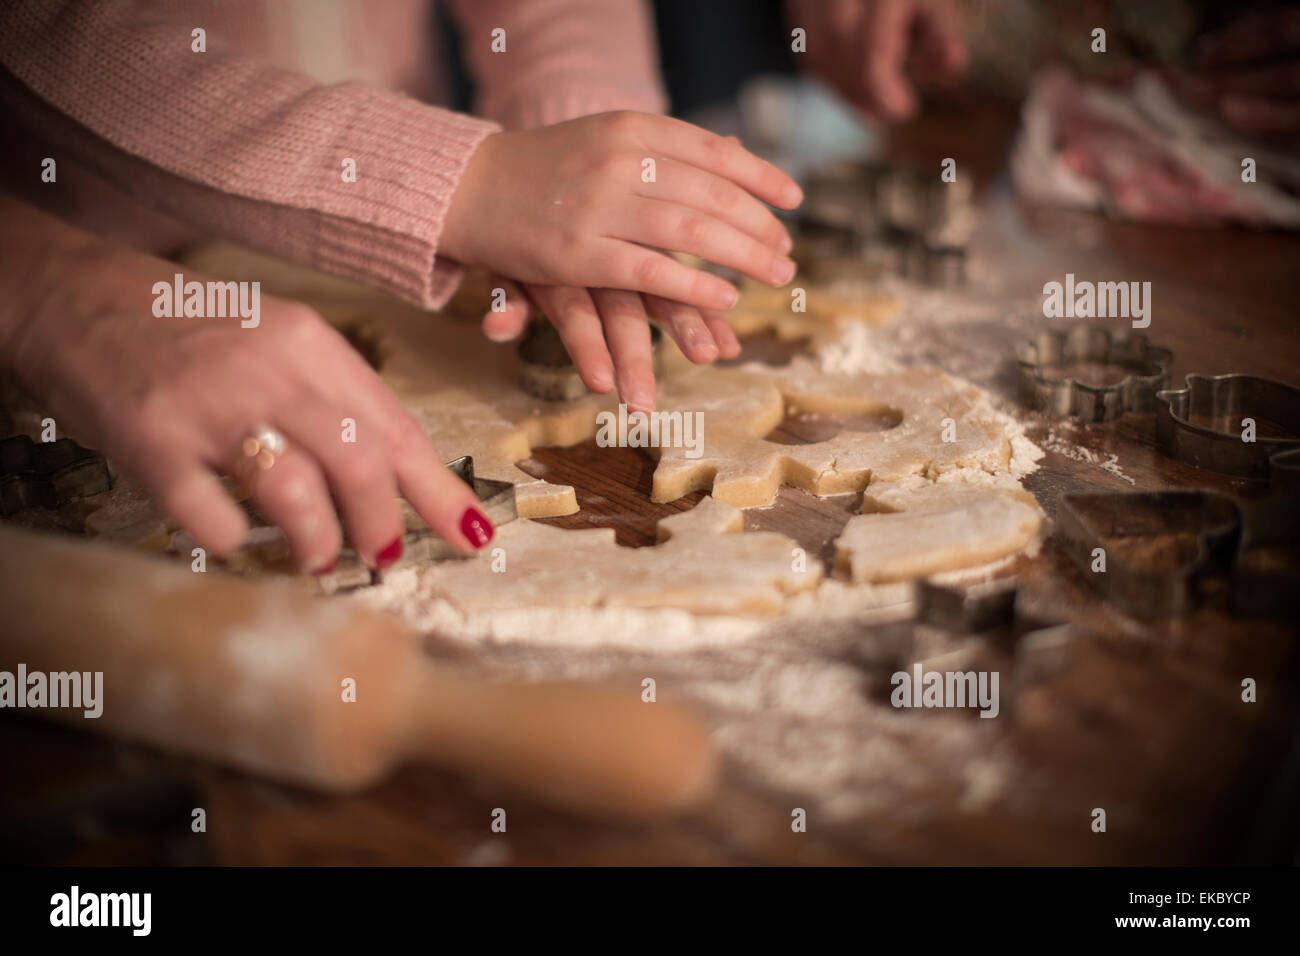 Cutting shapes in dough to make homemade cookies - Stock Image